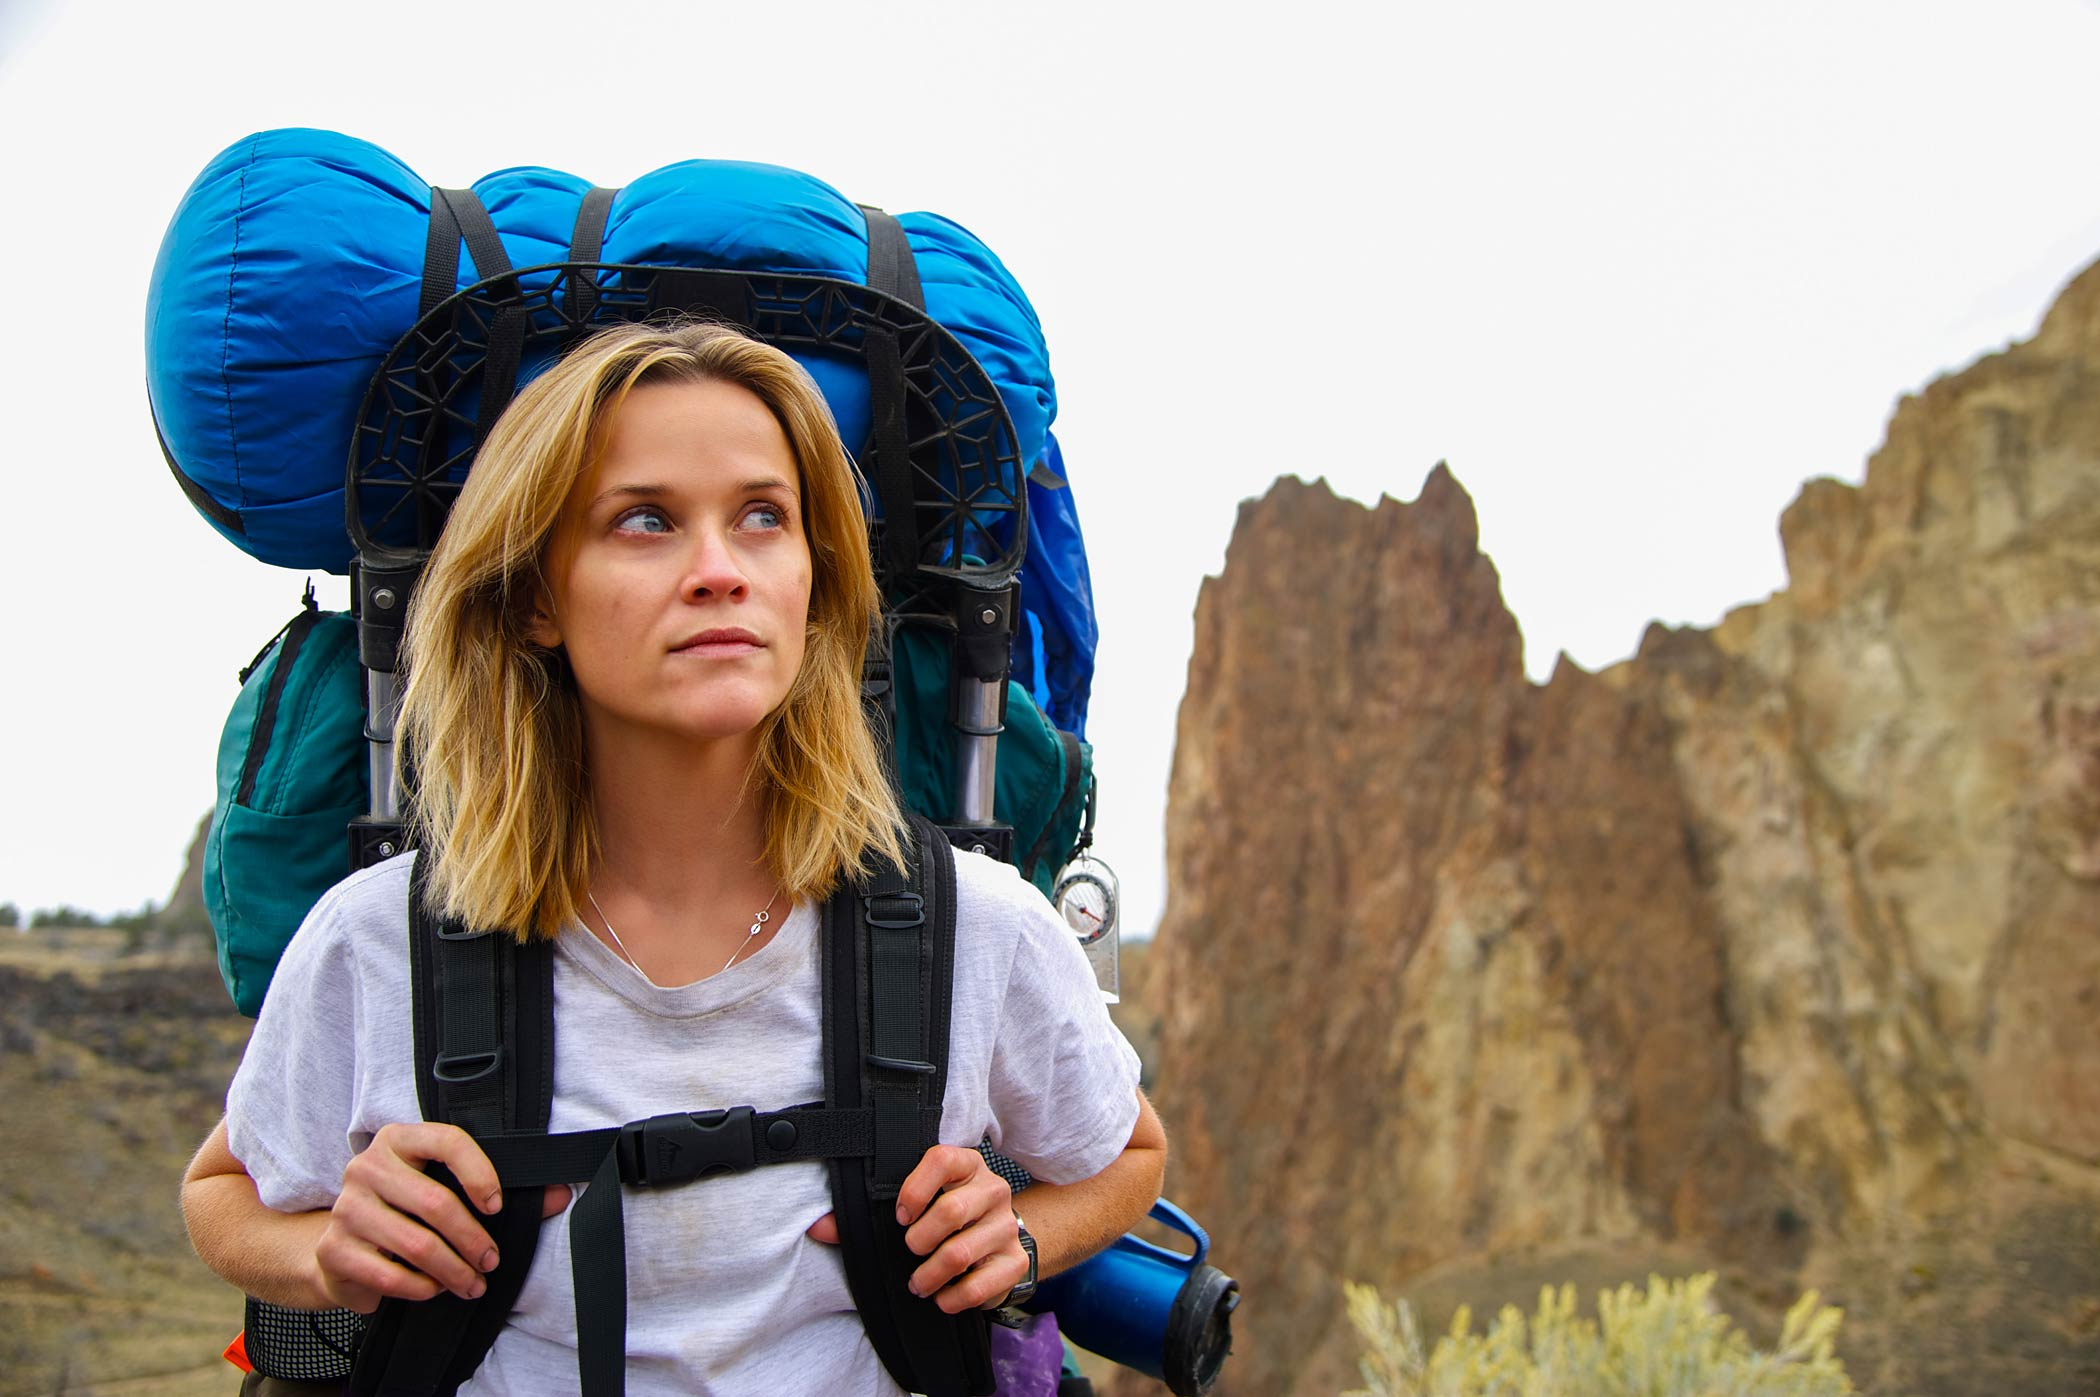 Reese Witherspoon, a white woman with blonde hair, is wearing a grey shirt and carrying a large hiking backpack while standing on a mountainous trail. She is looking into the distance.